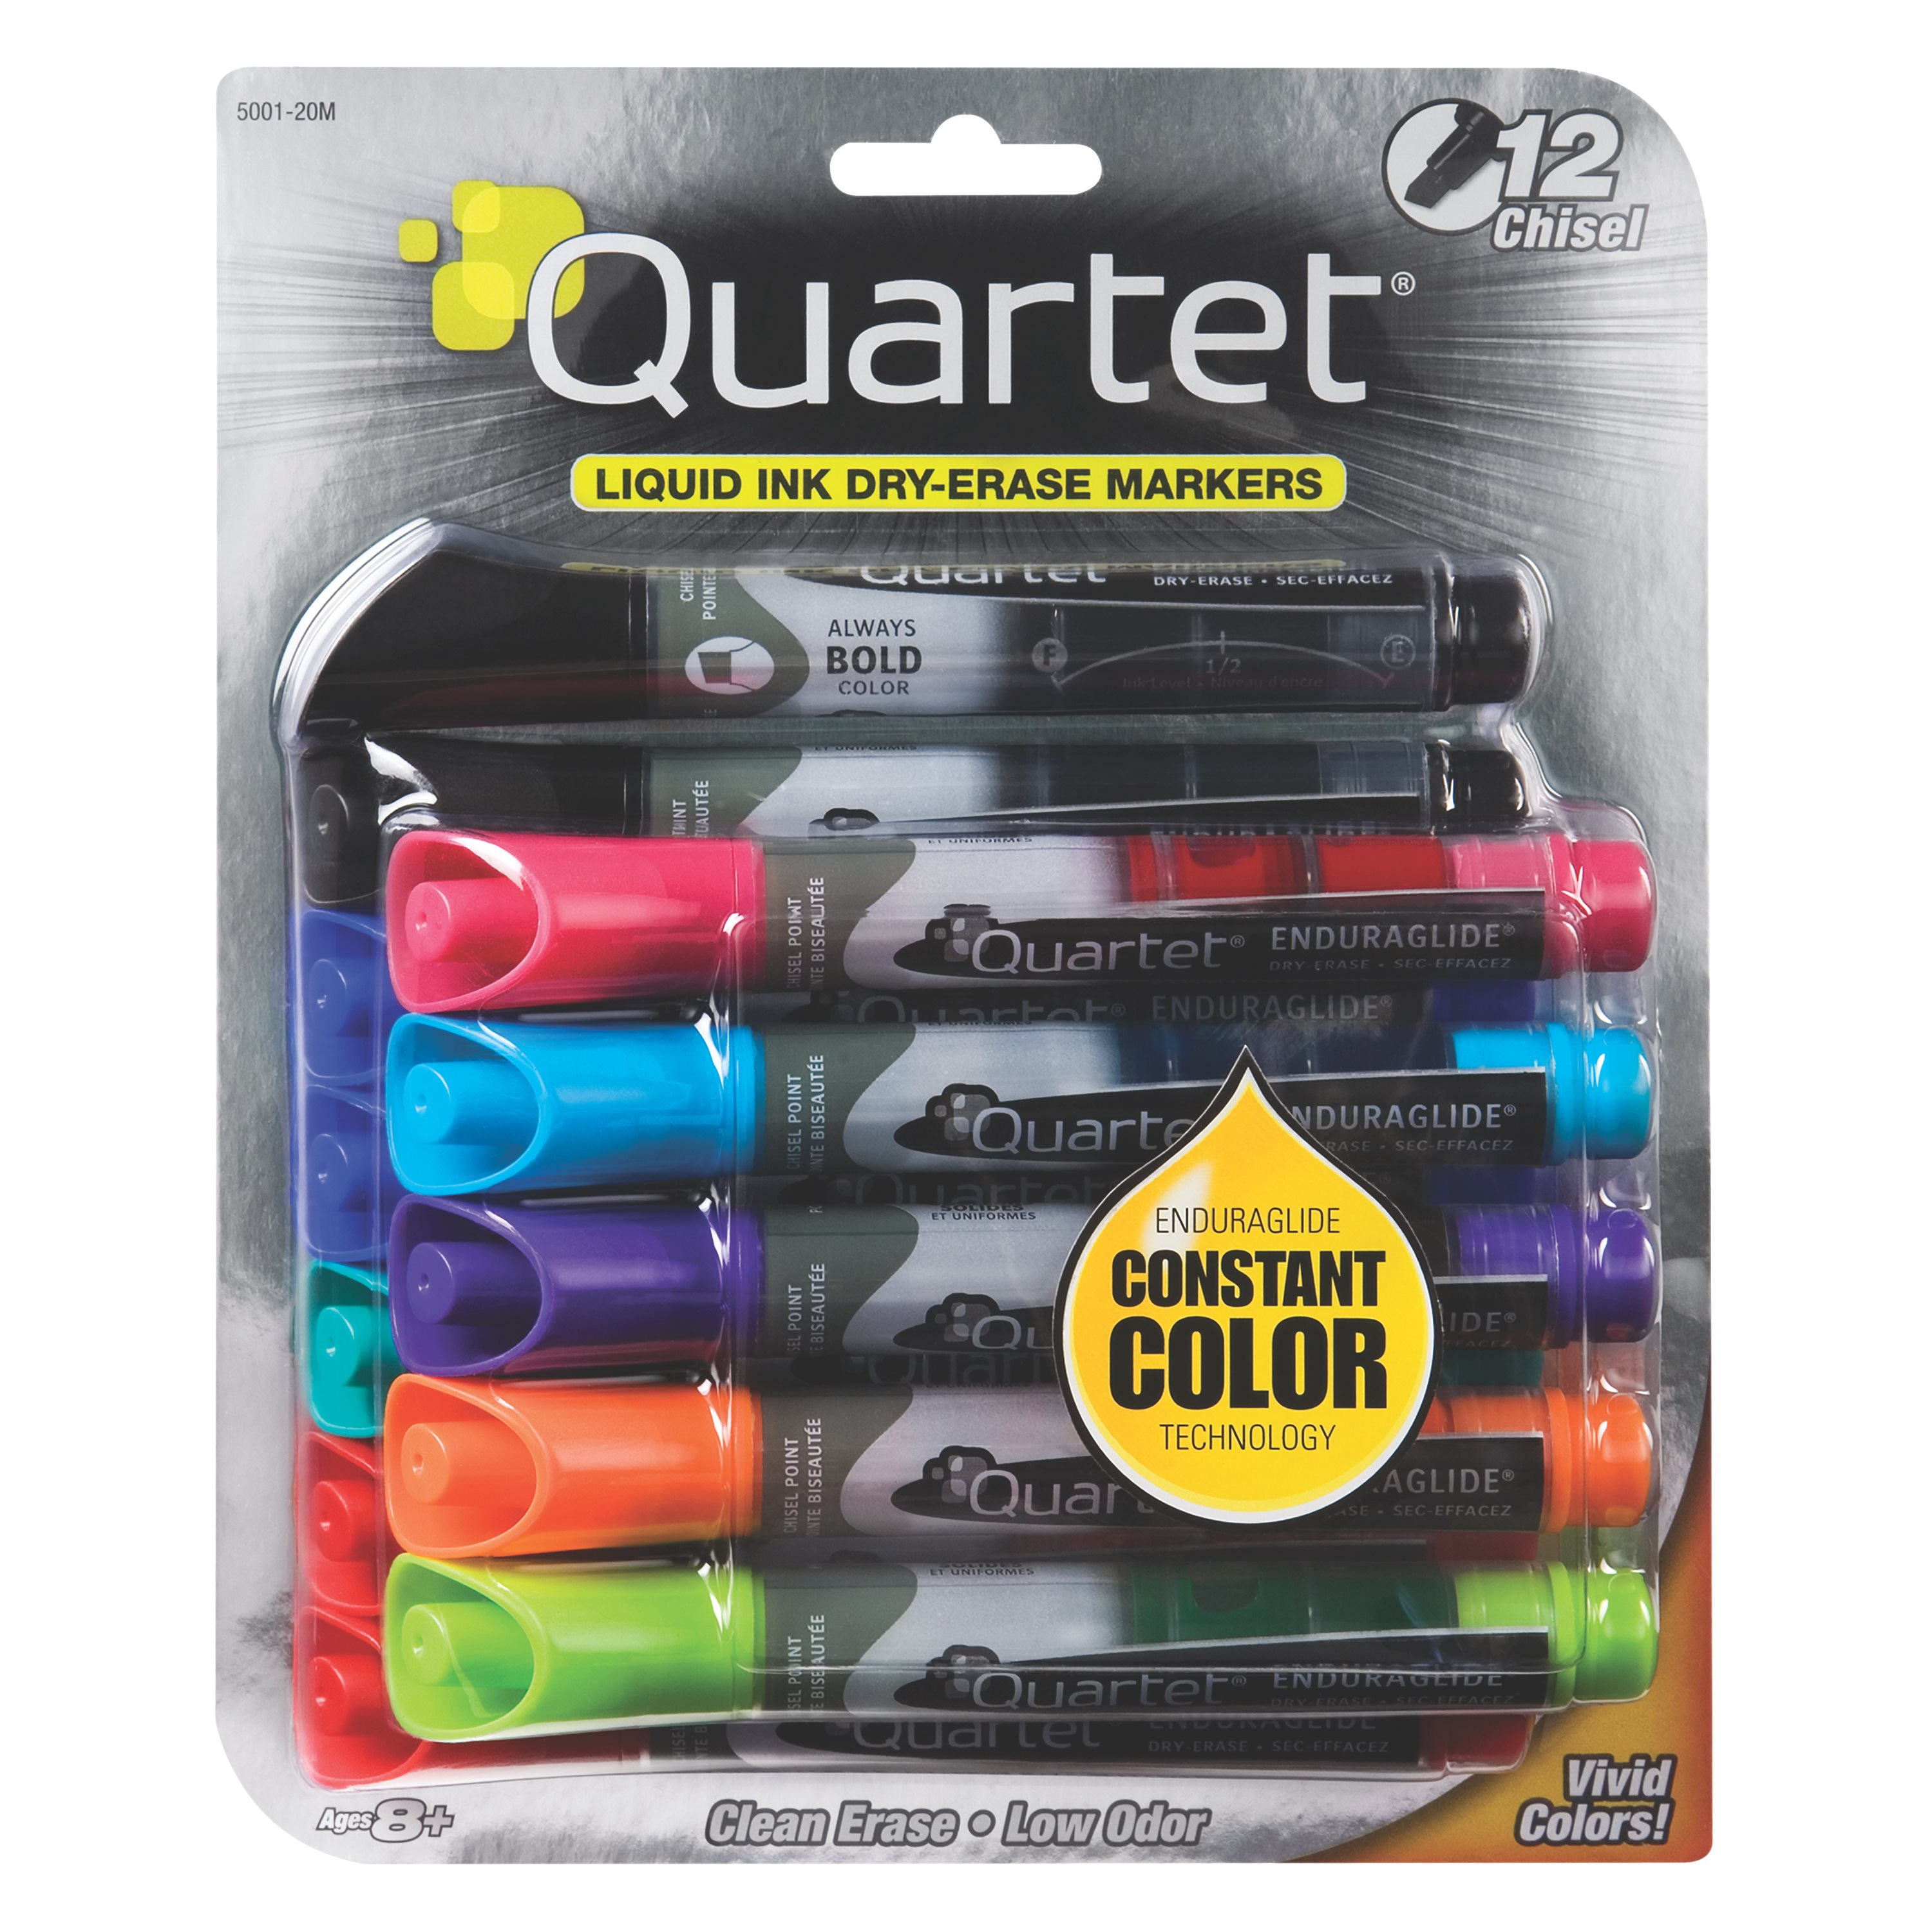 Quartet EnduraGlide Dry-Erase Markers, Chisel Tip, Assorted Colors, 12 Pack (5001-20MA)